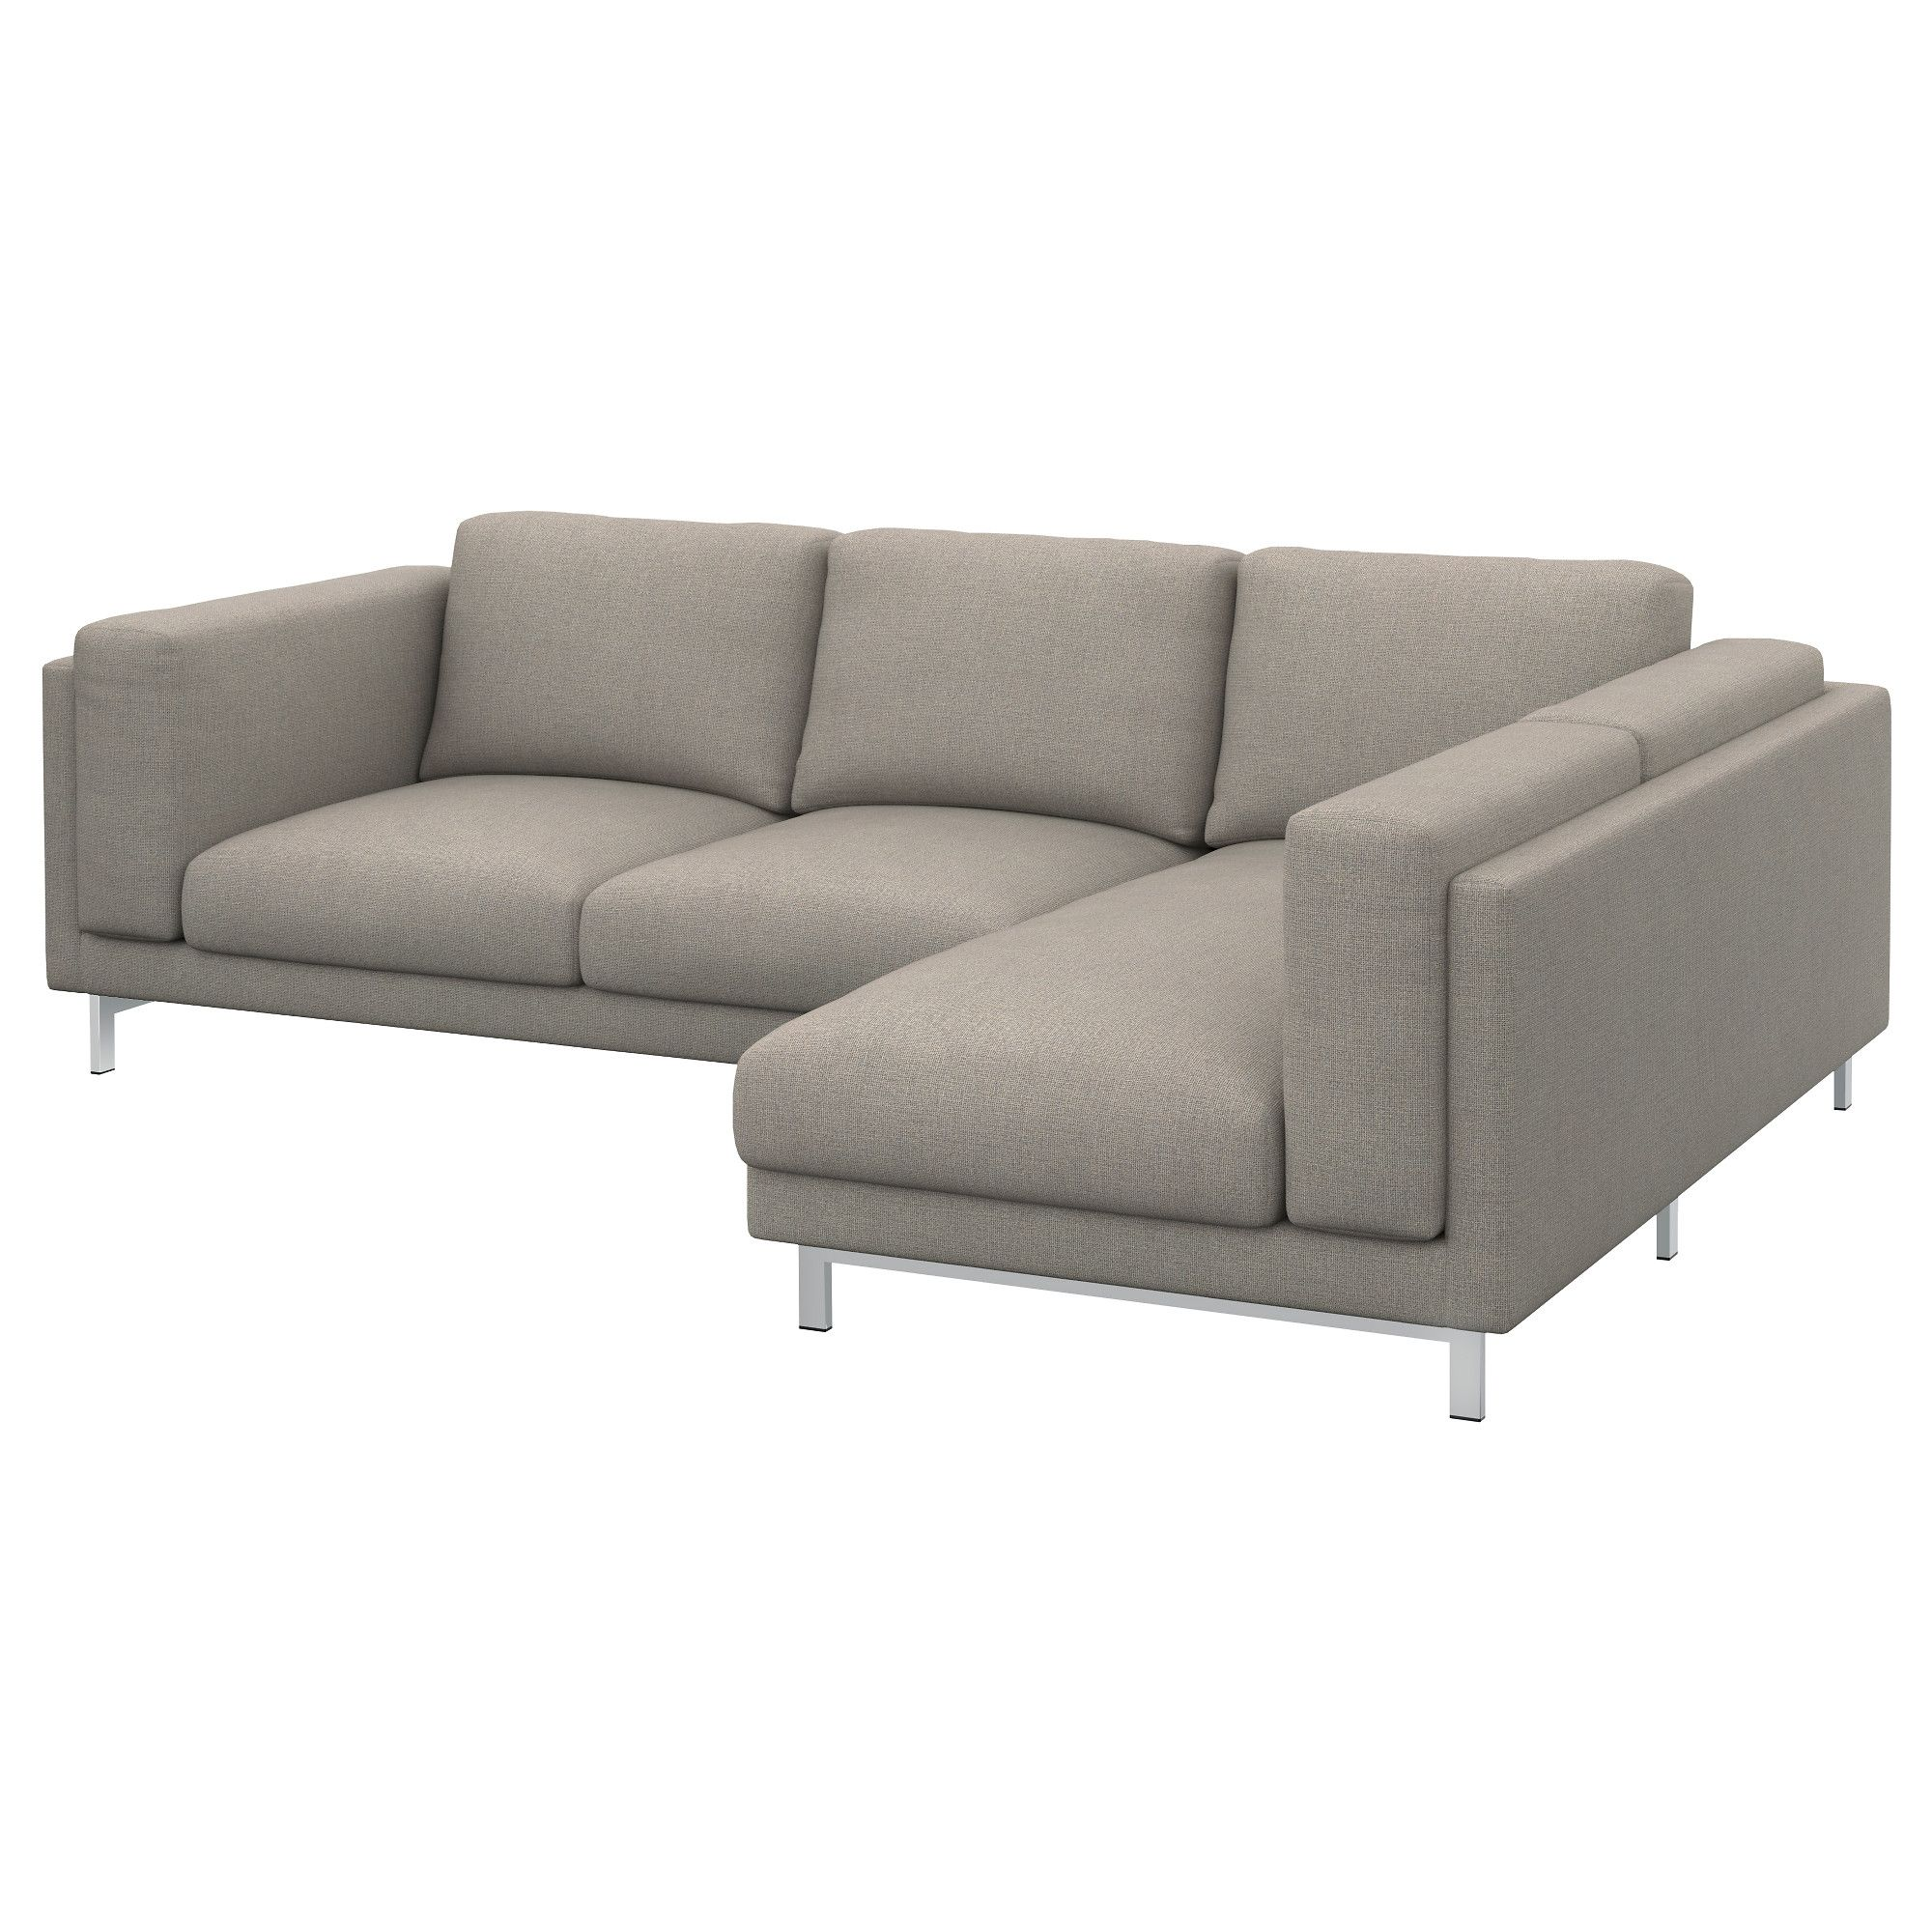 couch lovely ikea sofas for of full stylish bed intended sectional size sofa